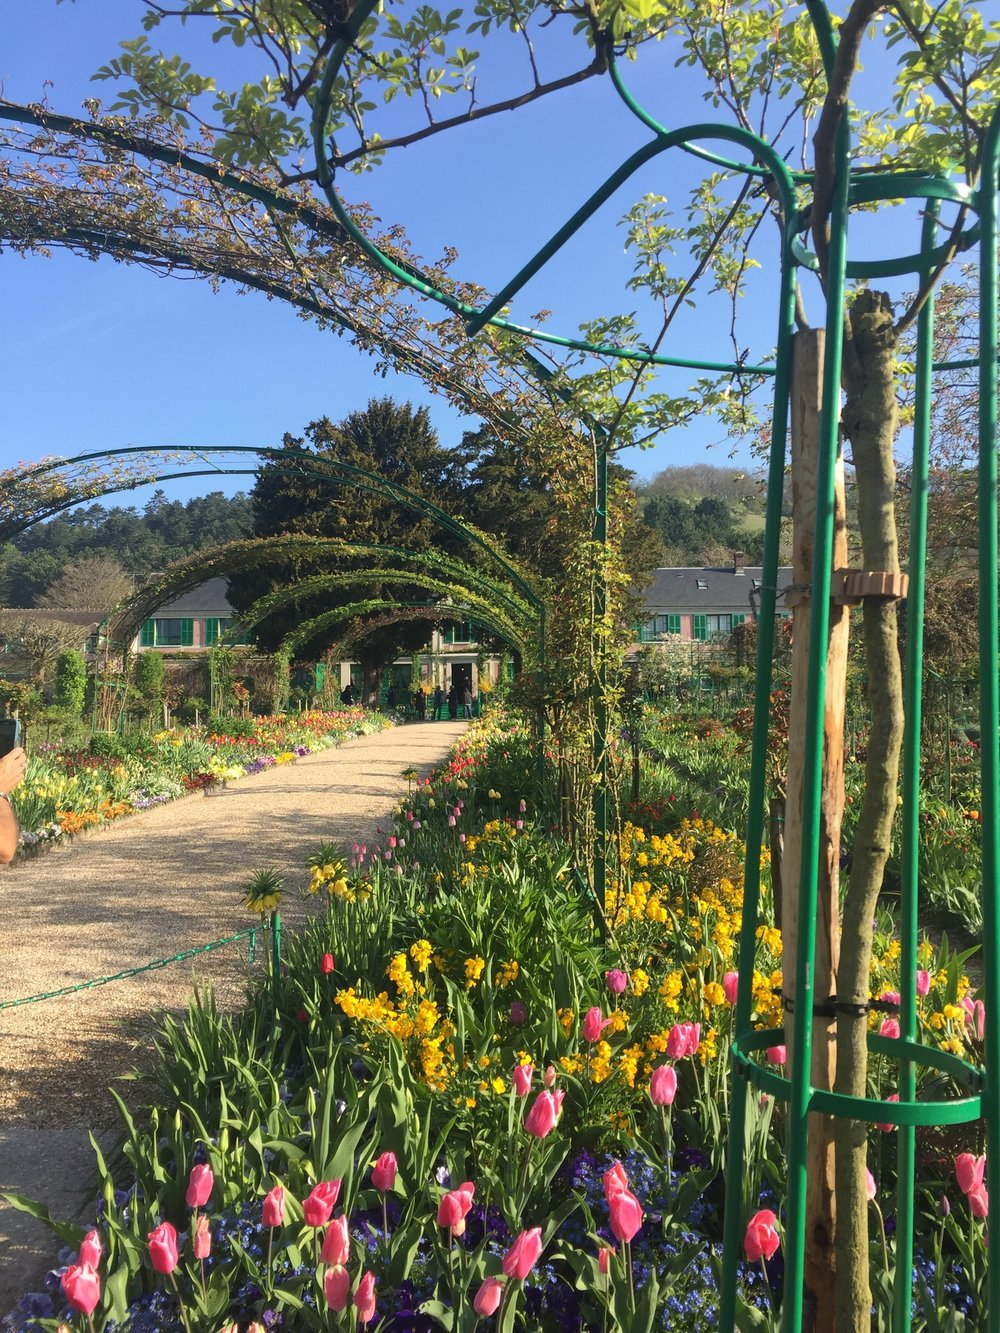 Giverny Monet Early April blooms stunning